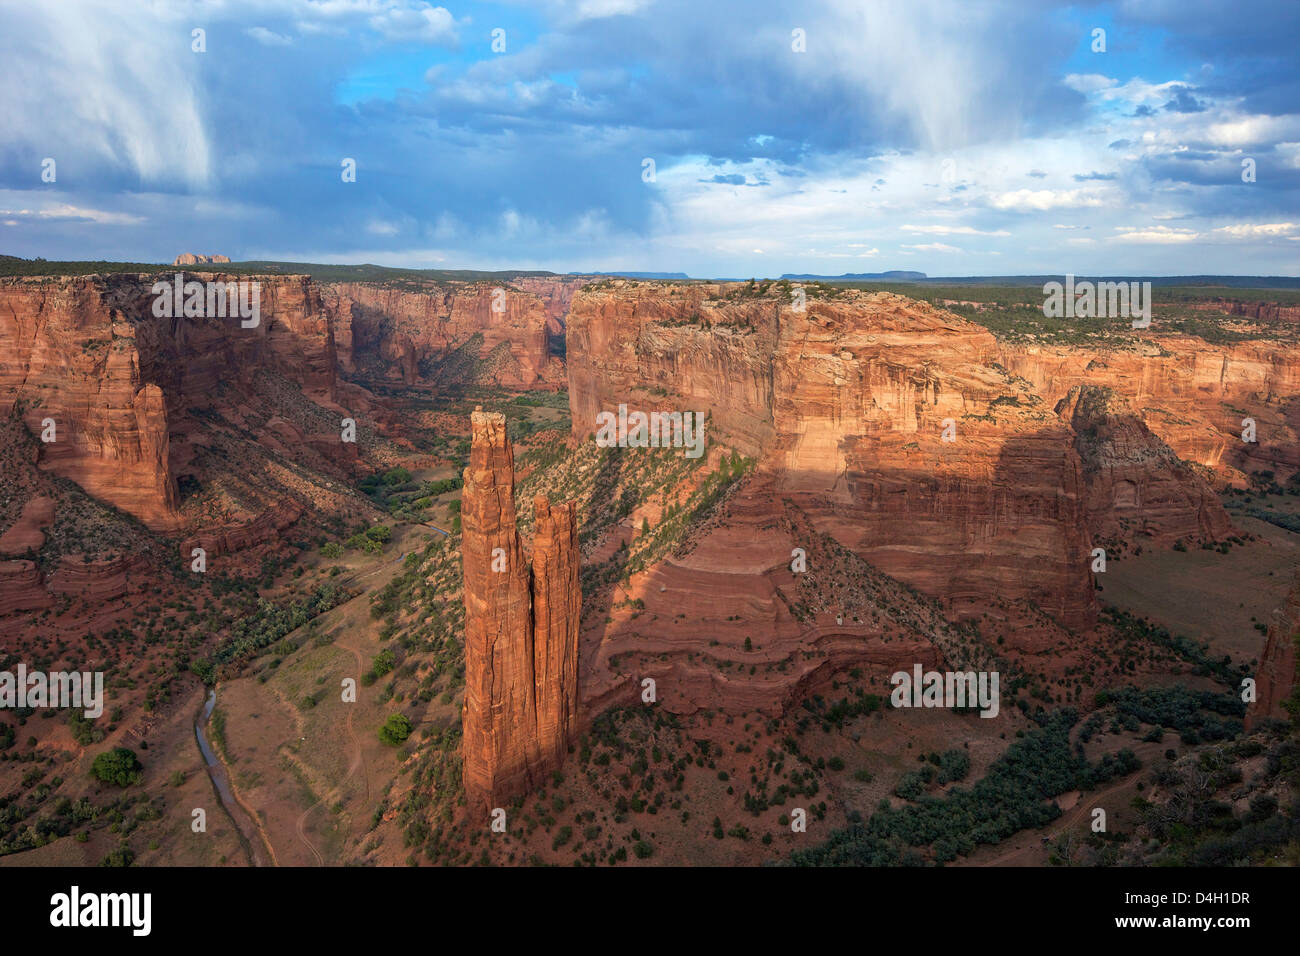 Spider Rock from Spider Rock Overlook, Canyon de Chelly National Monument, Arizona, USA - Stock Image